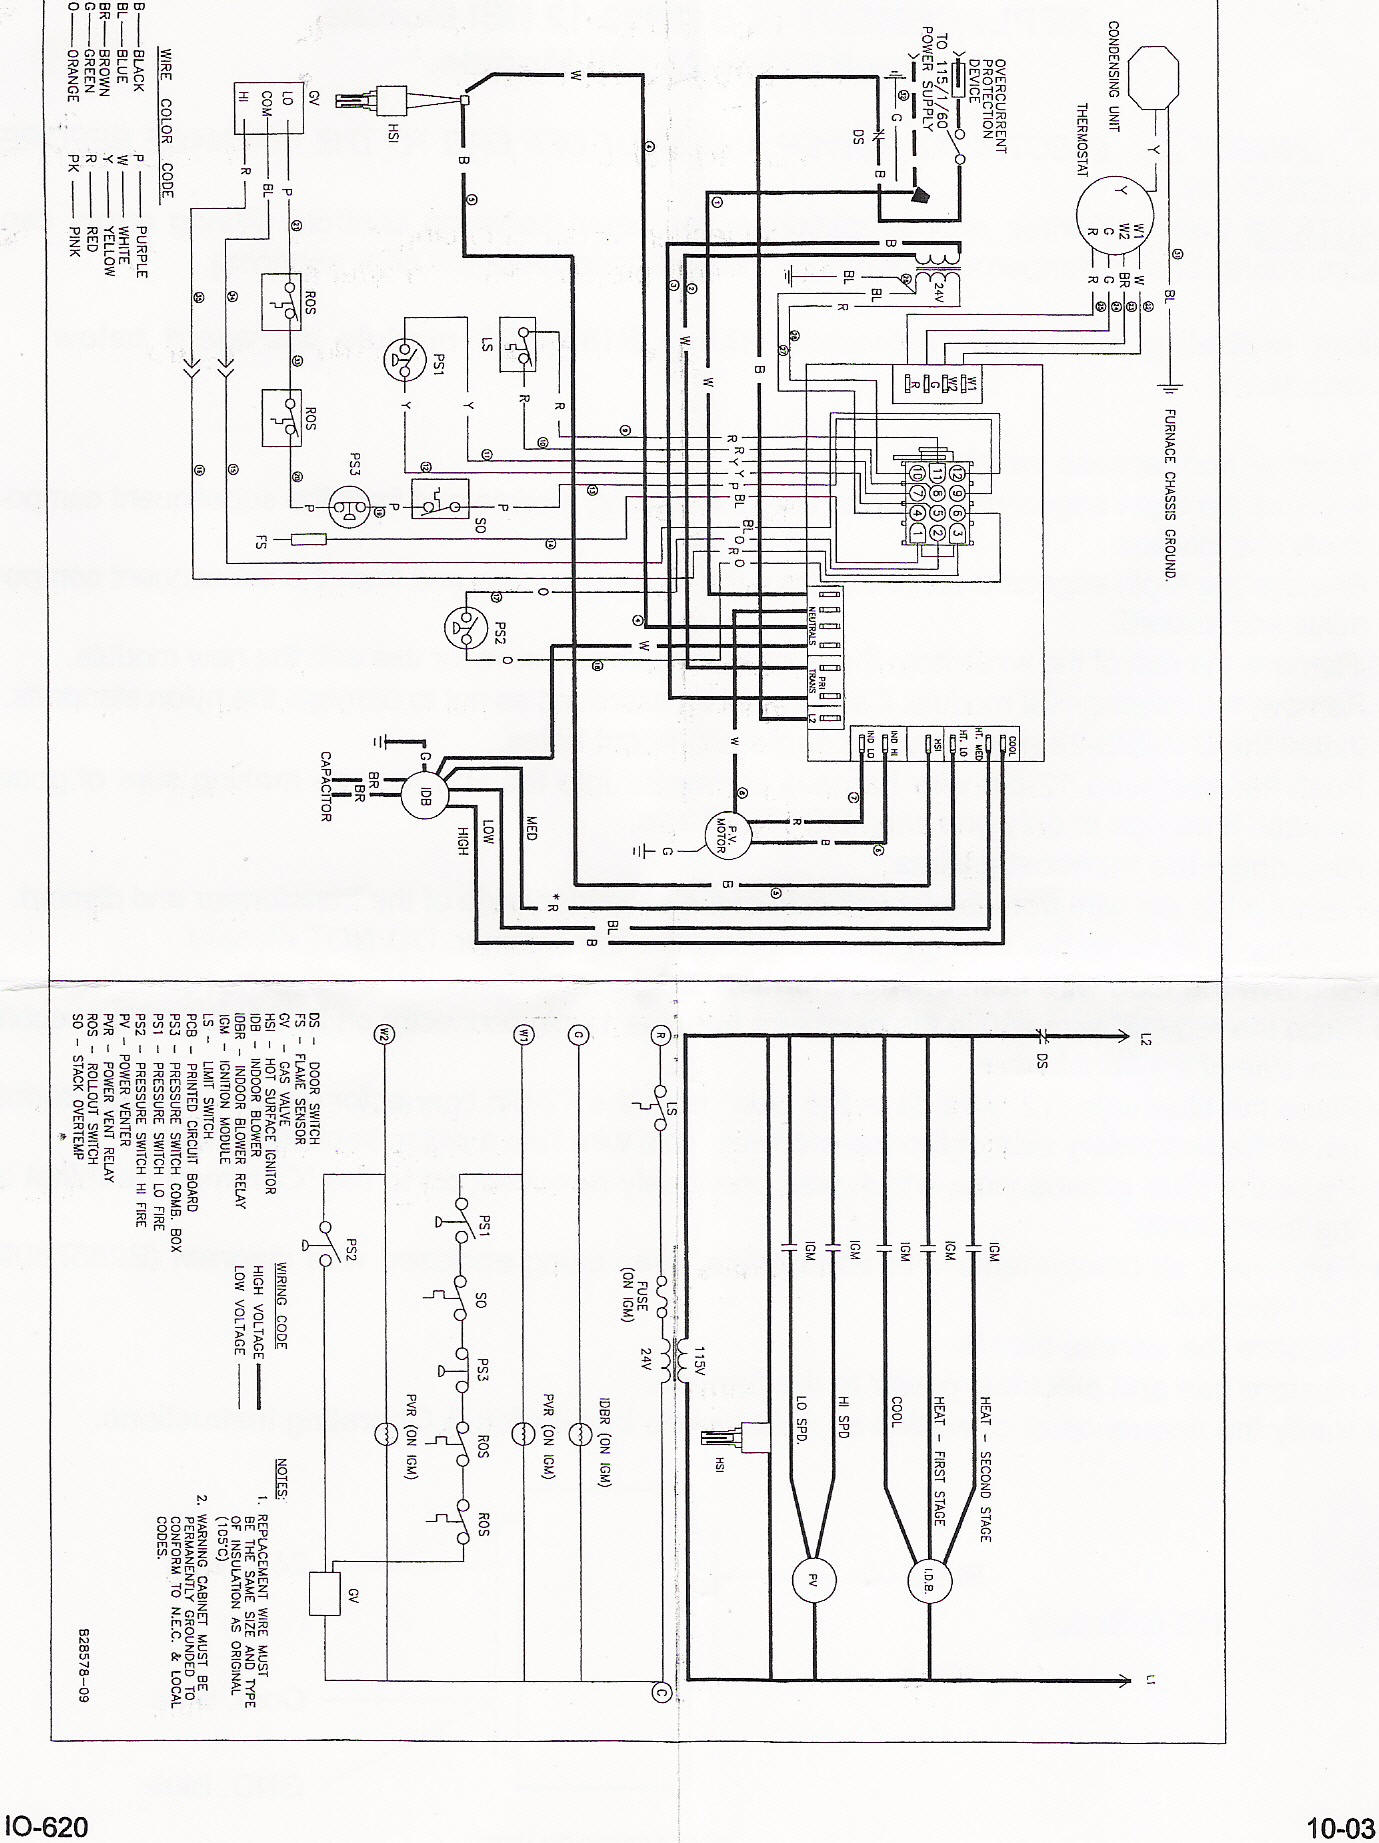 Modine Gas Fired Unit Heaters Wiring Diagram as well Rheem Wiring Diagram Heat Pump as well Singer Furnace Wiring Diagram in addition Wiring Diagram For Totaline Thermostat also White Rodgers Fan Relay Wiring Diagram. on wiring diagram for honeywell heat pump thermostat